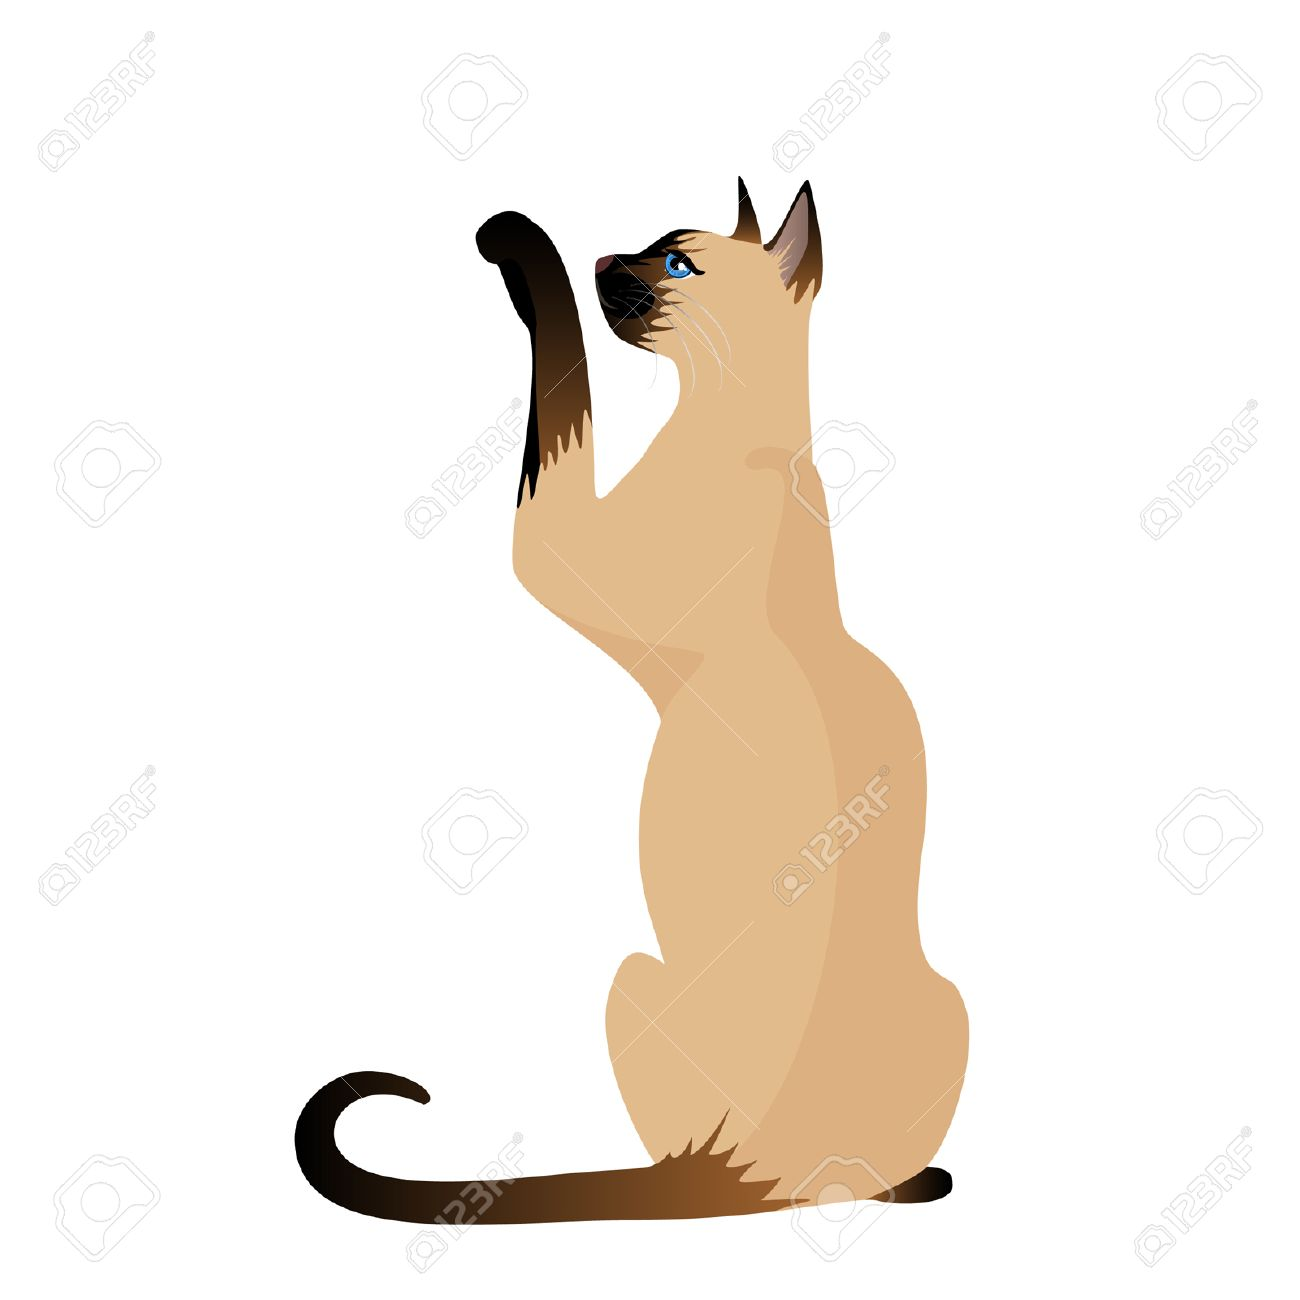 Siamese cat animated clipart picture royalty free download Siamese Cat Clipart | Free download best Siamese Cat Clipart ... picture royalty free download